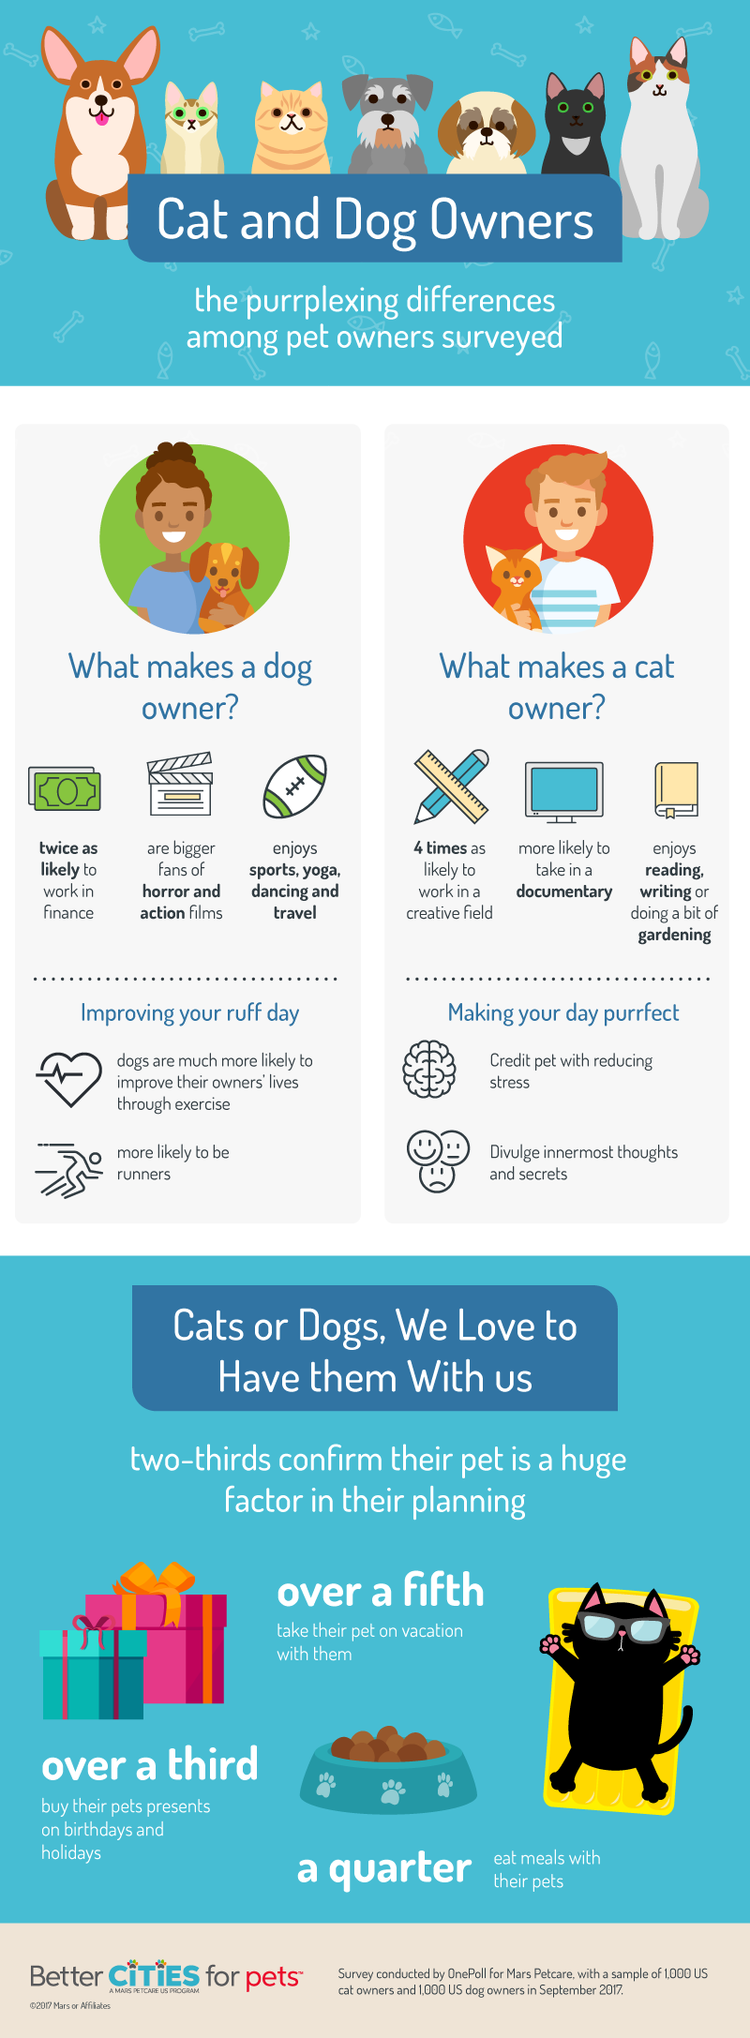 a creative writing about dogs and cats Choosing the right animal to live with is completely subjective, but dr marty becker compares dogs vs cats in five areas to see how they rank as companions.